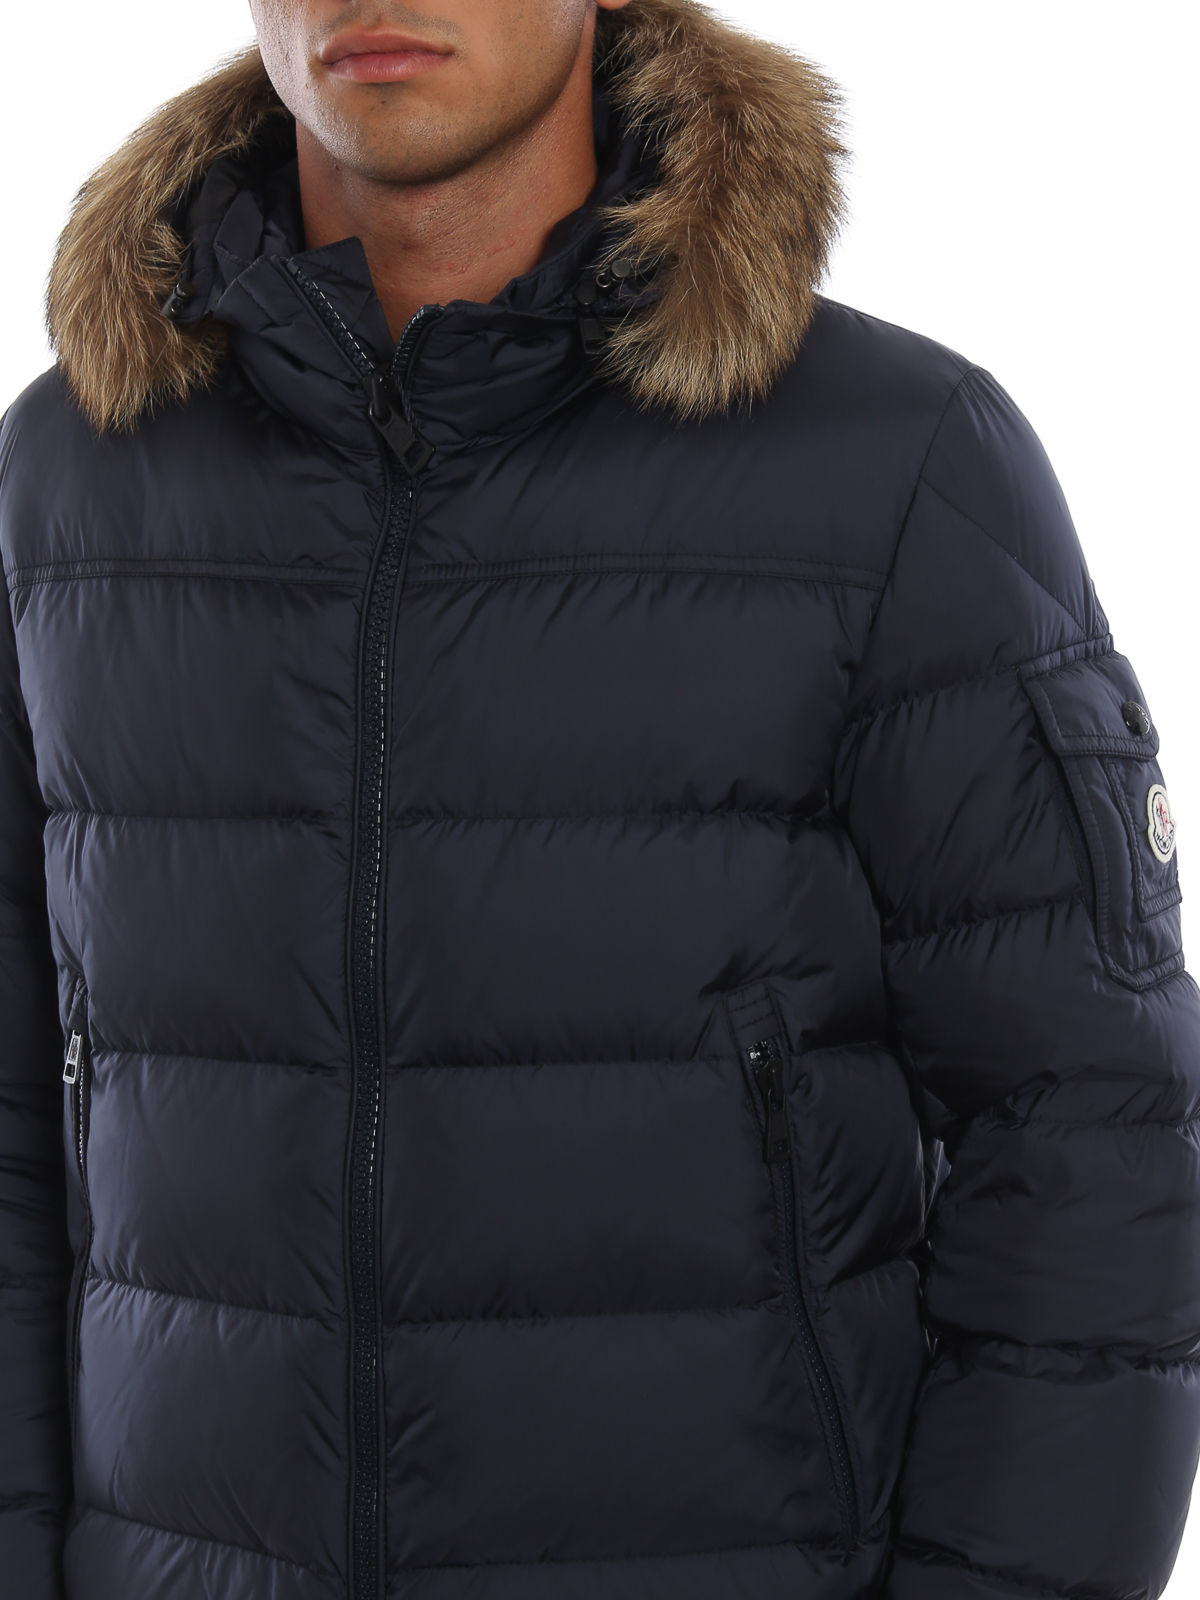 Moncler - Marque puffer jacket with fur trimmed hood - کاپشن - D2 ... ef2f158afde